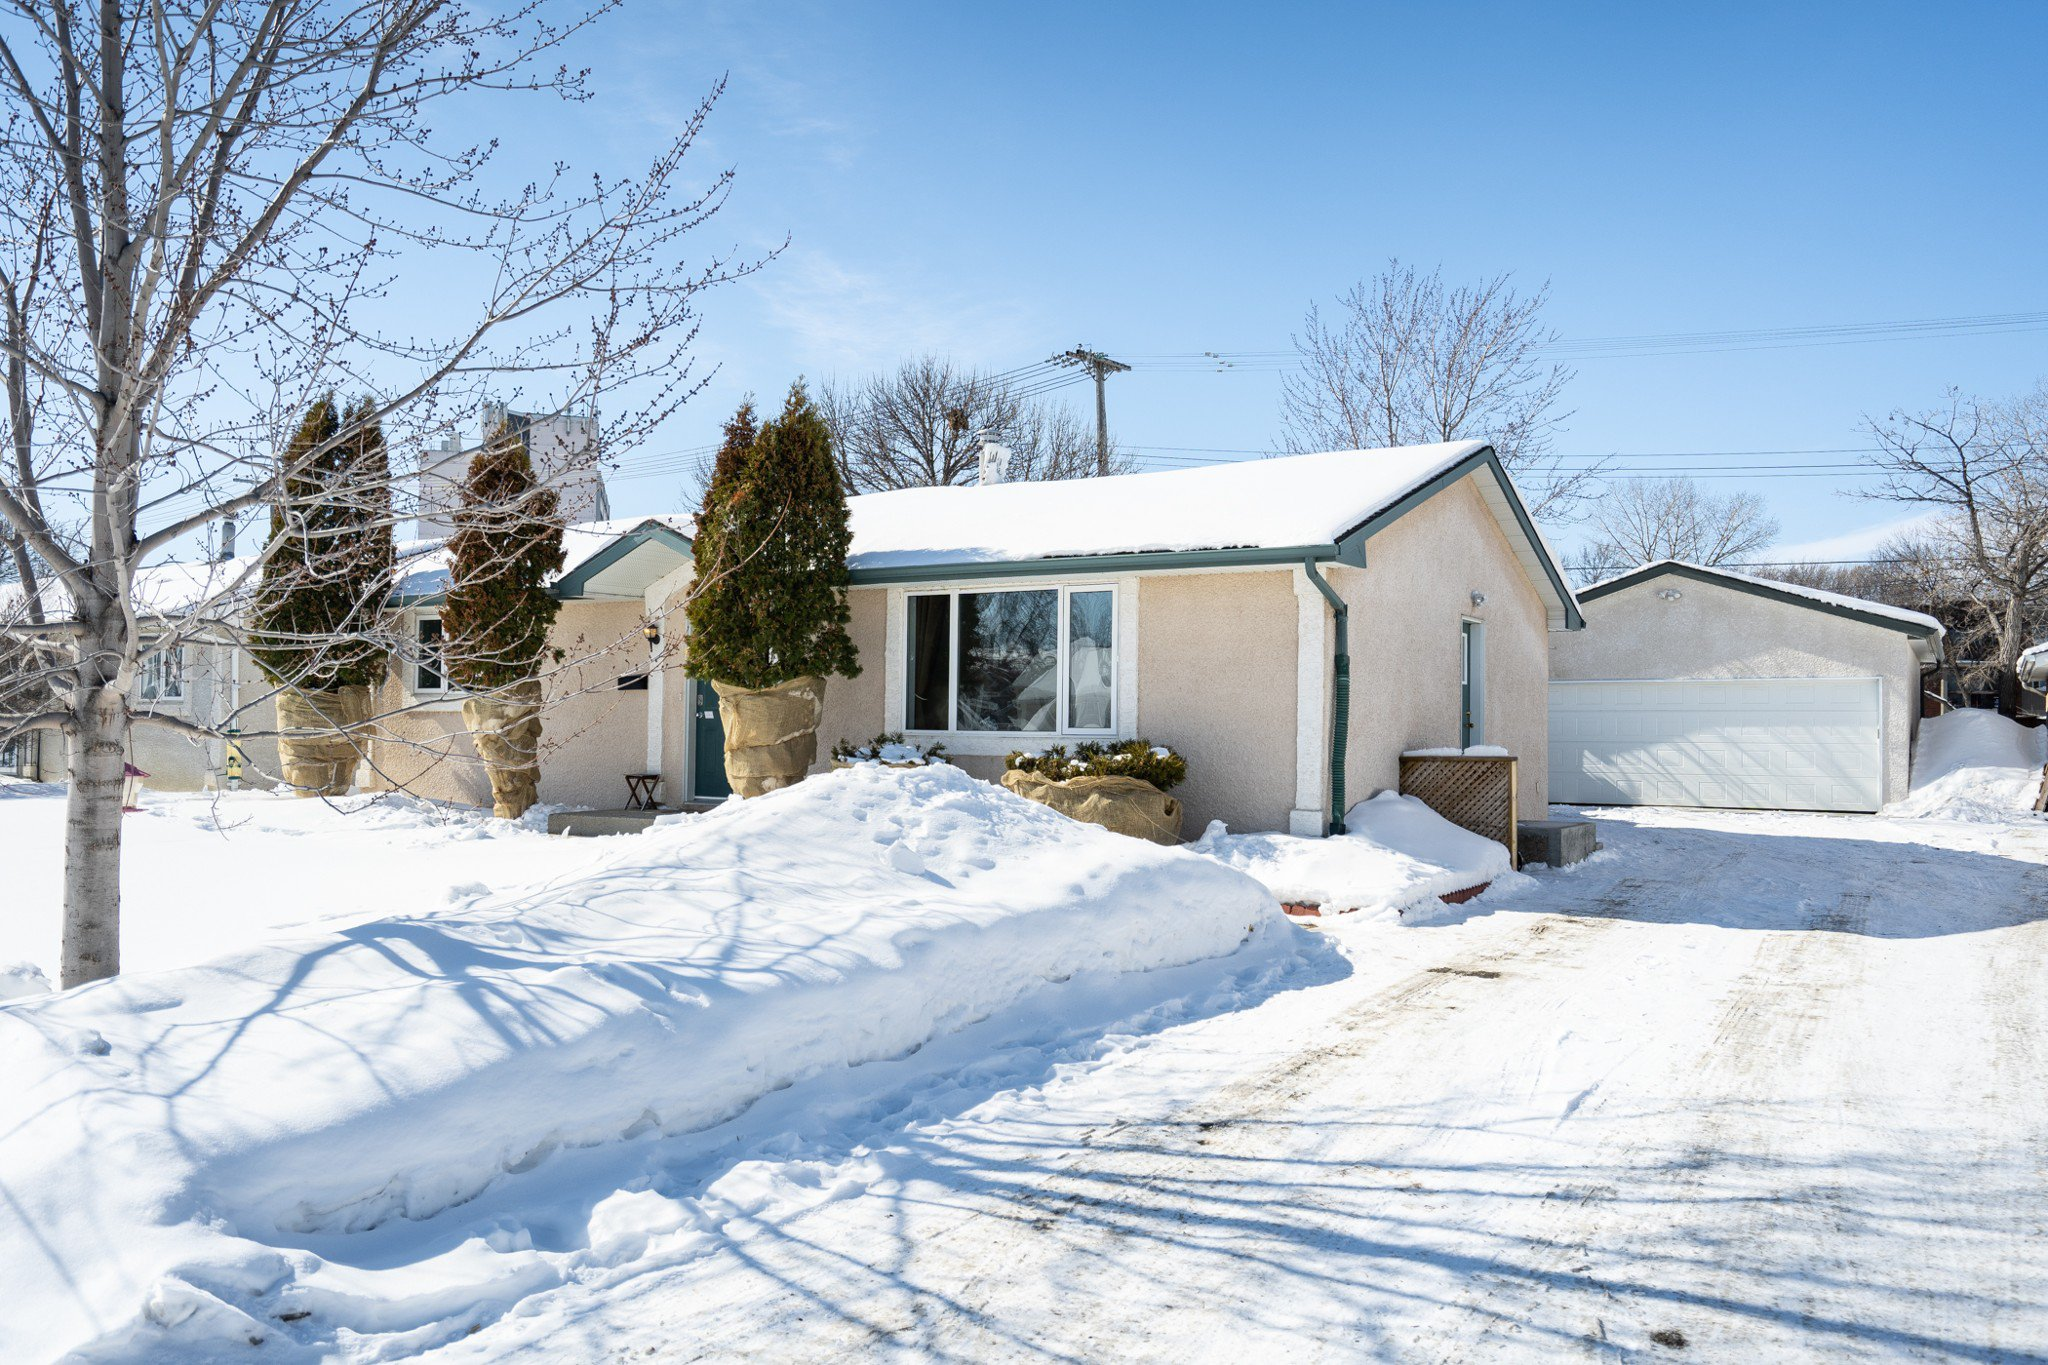 Main Photo: 134 Braintree Crescent in Winnipeg: Jameswood House for sale (5F)  : MLS®# 1905333